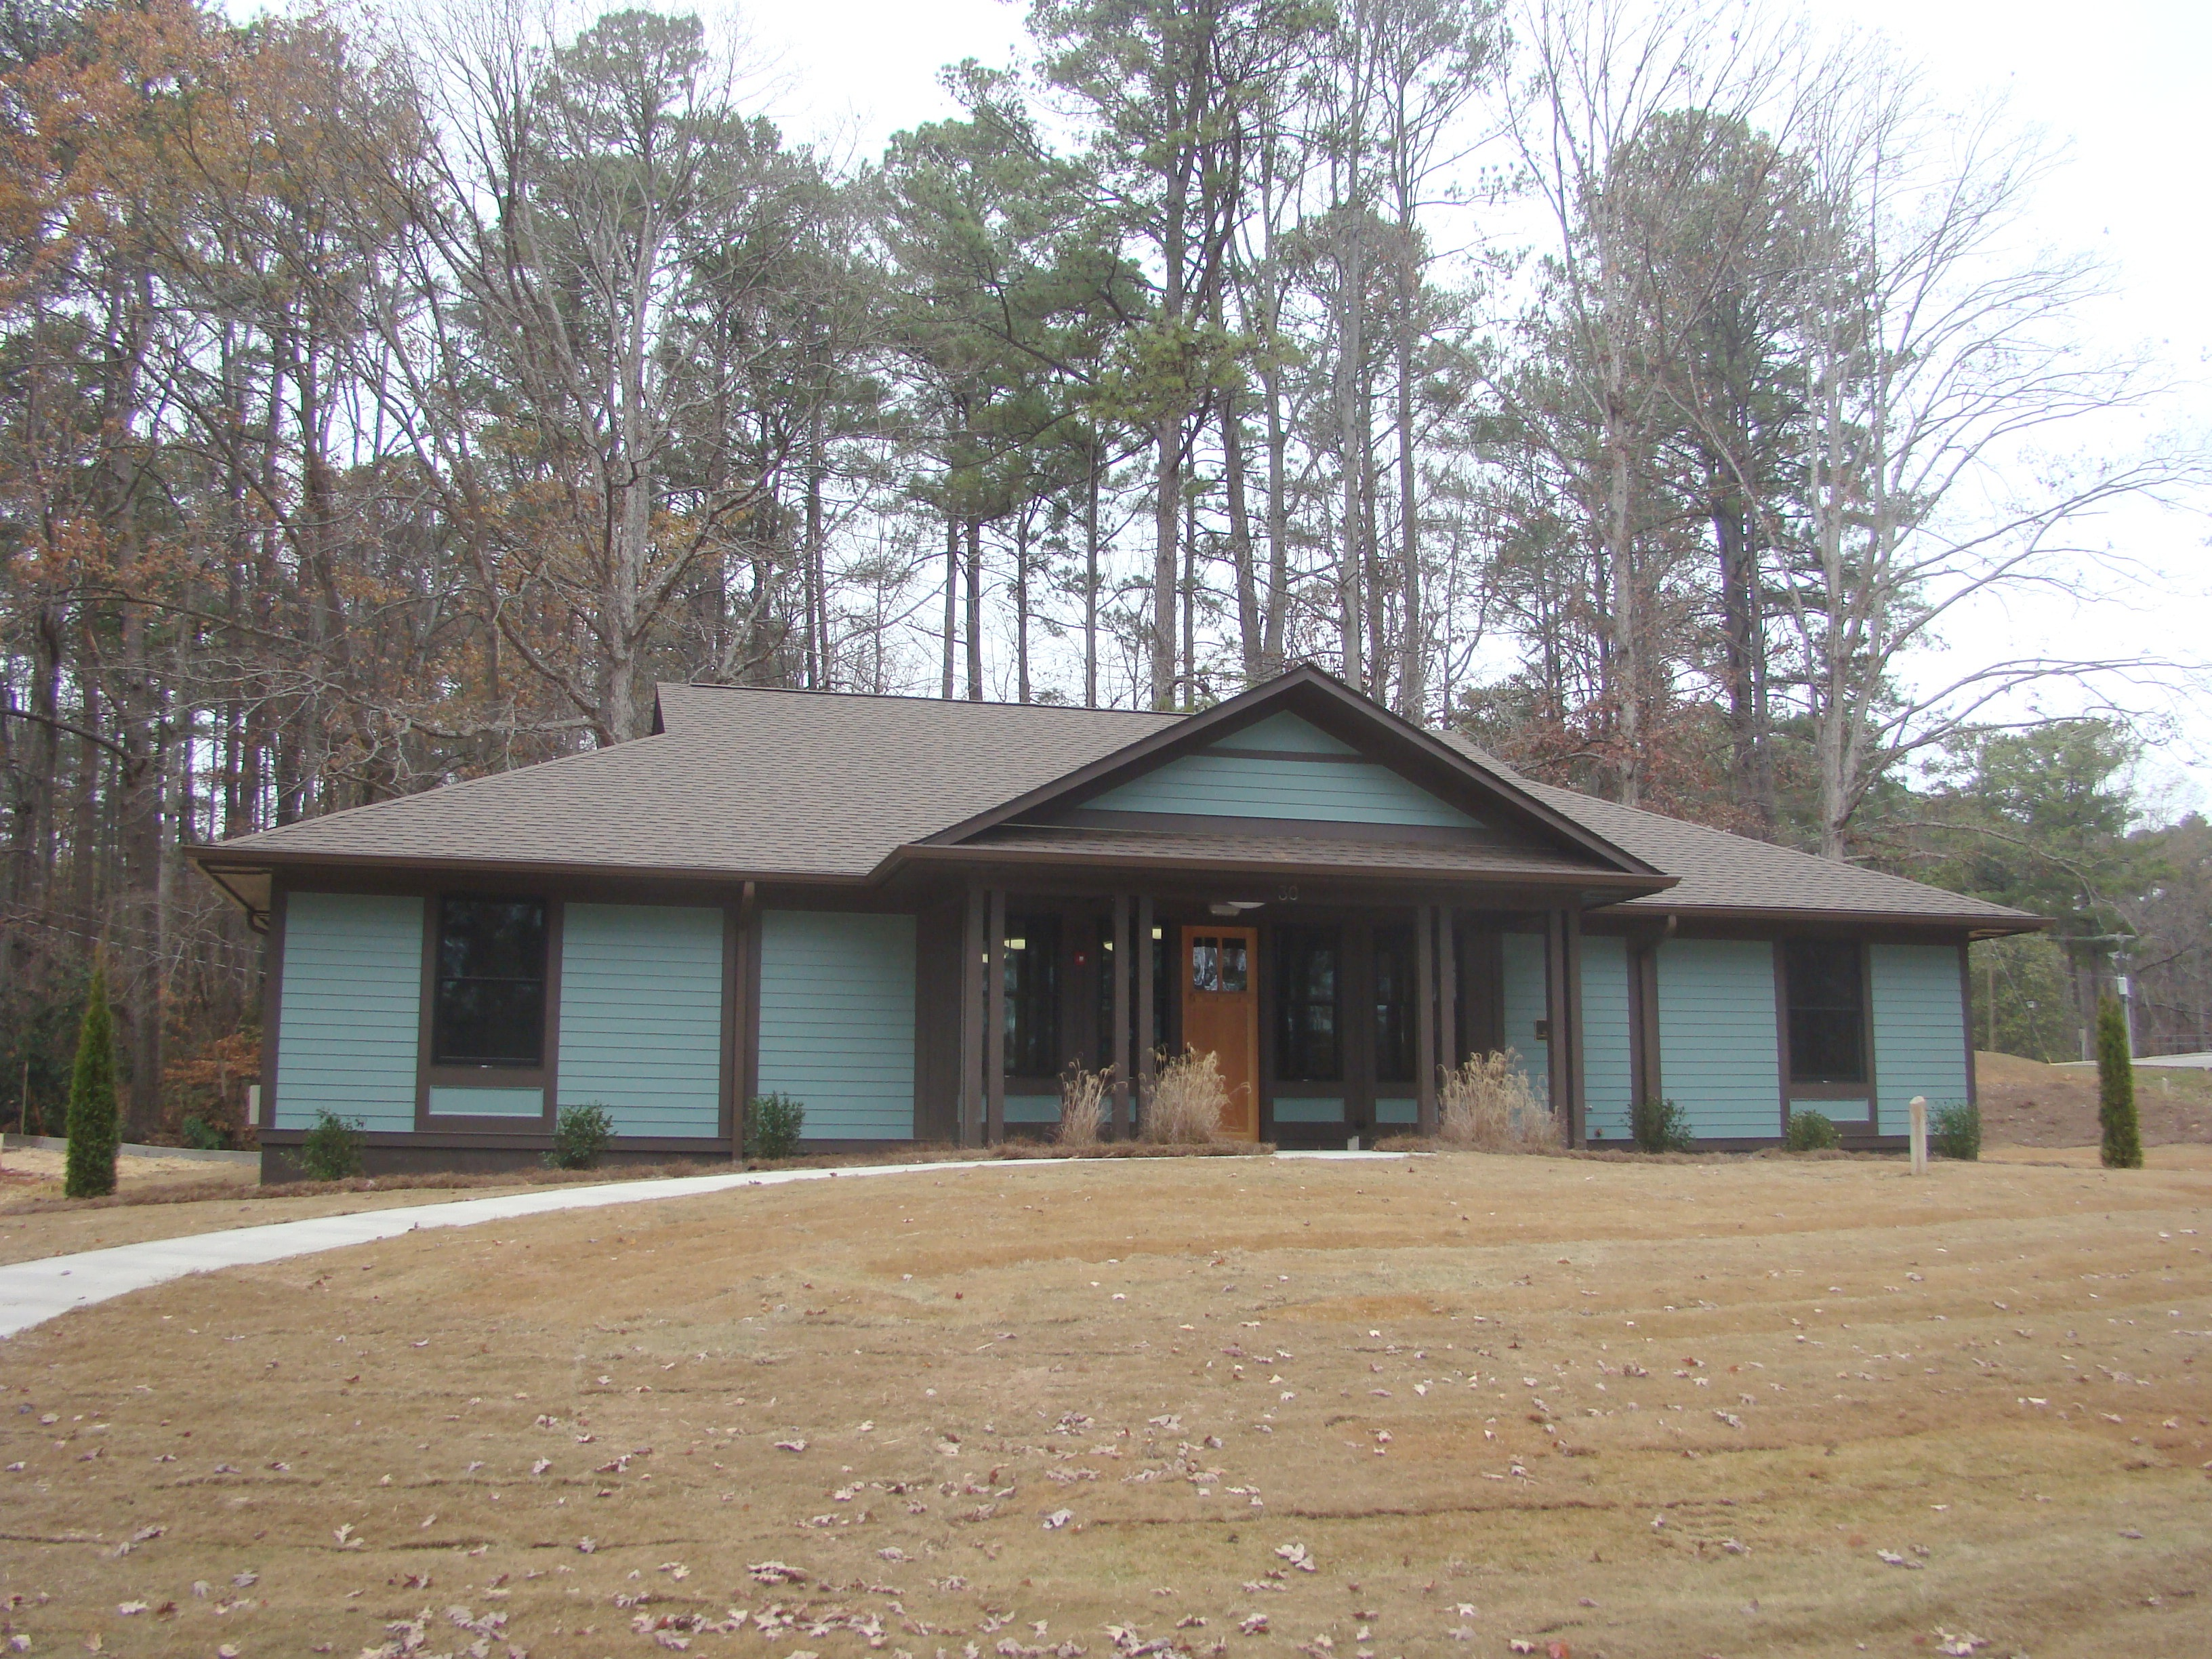 Georgia's 2013 state budget includes funds for seven new cabins at Rock Eagle 4-H Center in Eatonton, Ga.